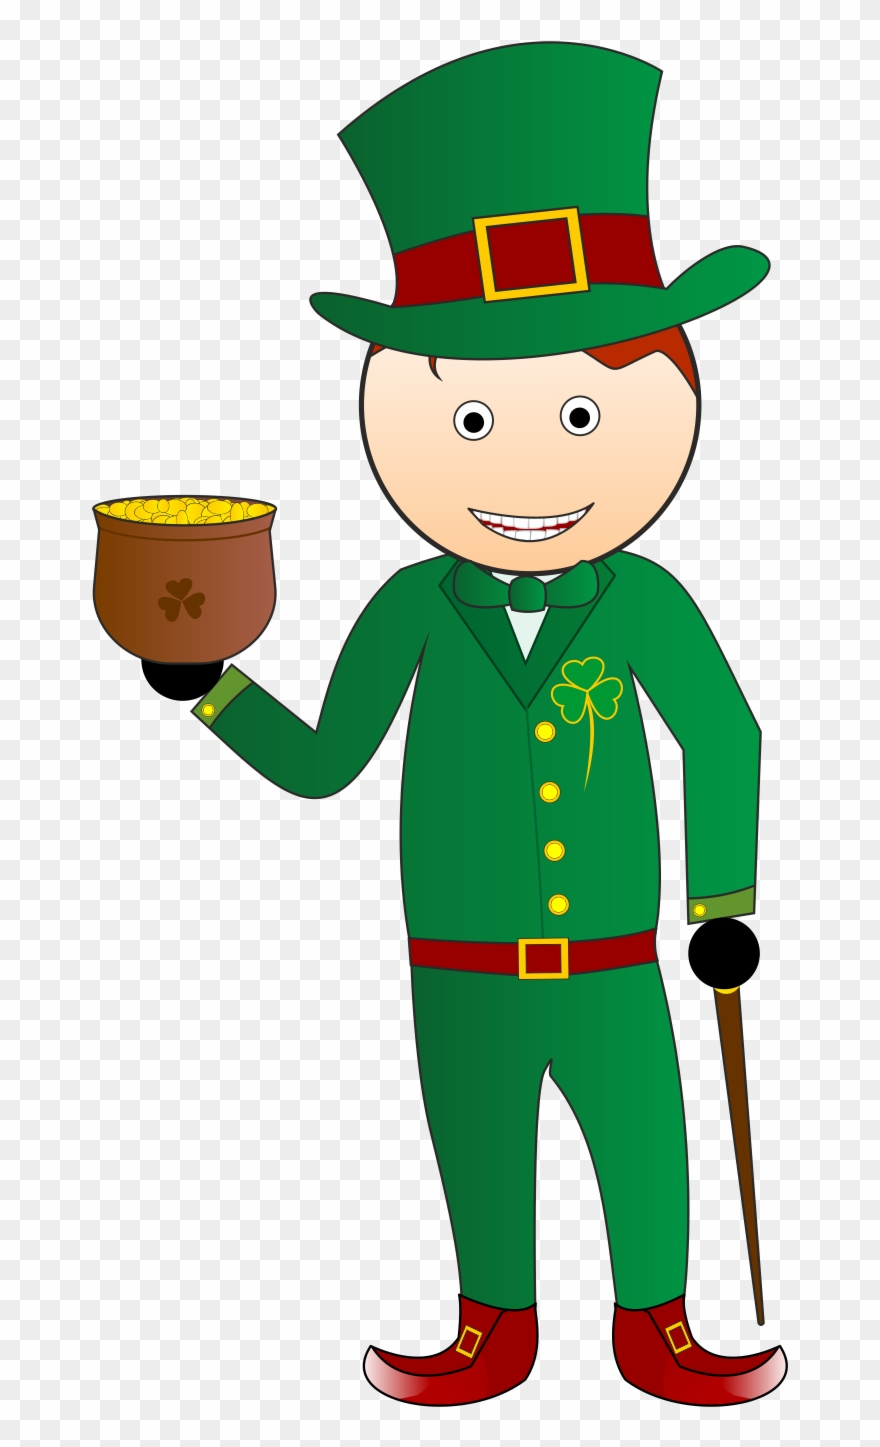 What If You Catch A Leprechaun - Saint Patrick\'s Day Clipart - Full ... clipart royalty free stock